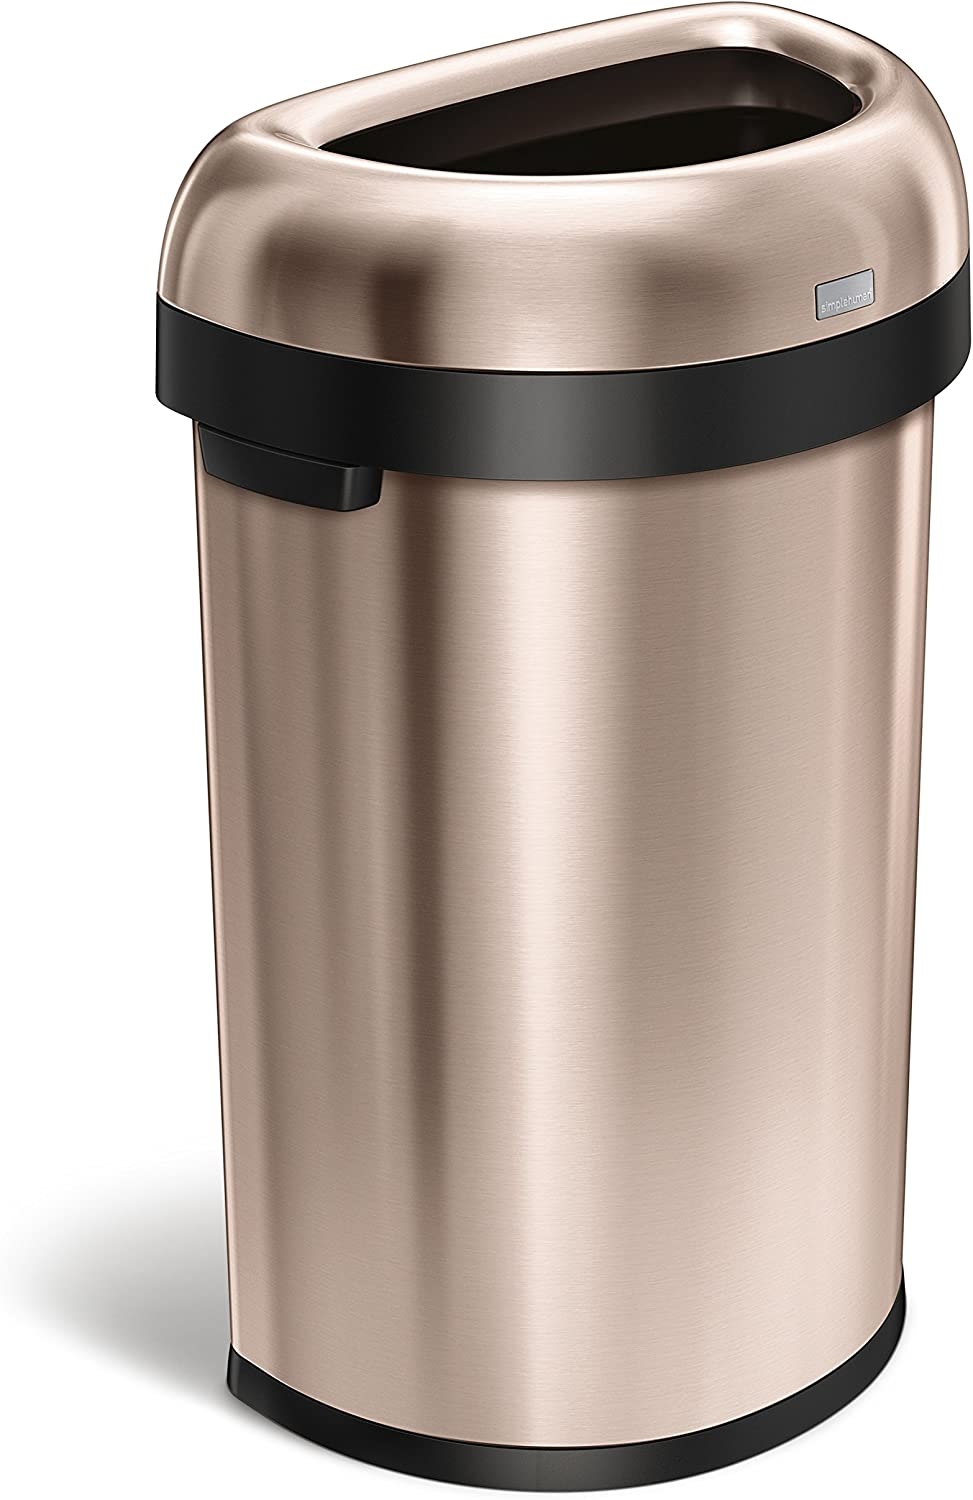 simplehuman 60 Liter 15.9 Gallon Commercial Heavy-Gauge Stainless Steel Large Semi-Round Open Trash Can Dark Bronze Stainless Steel Code P 60 Pack Liners